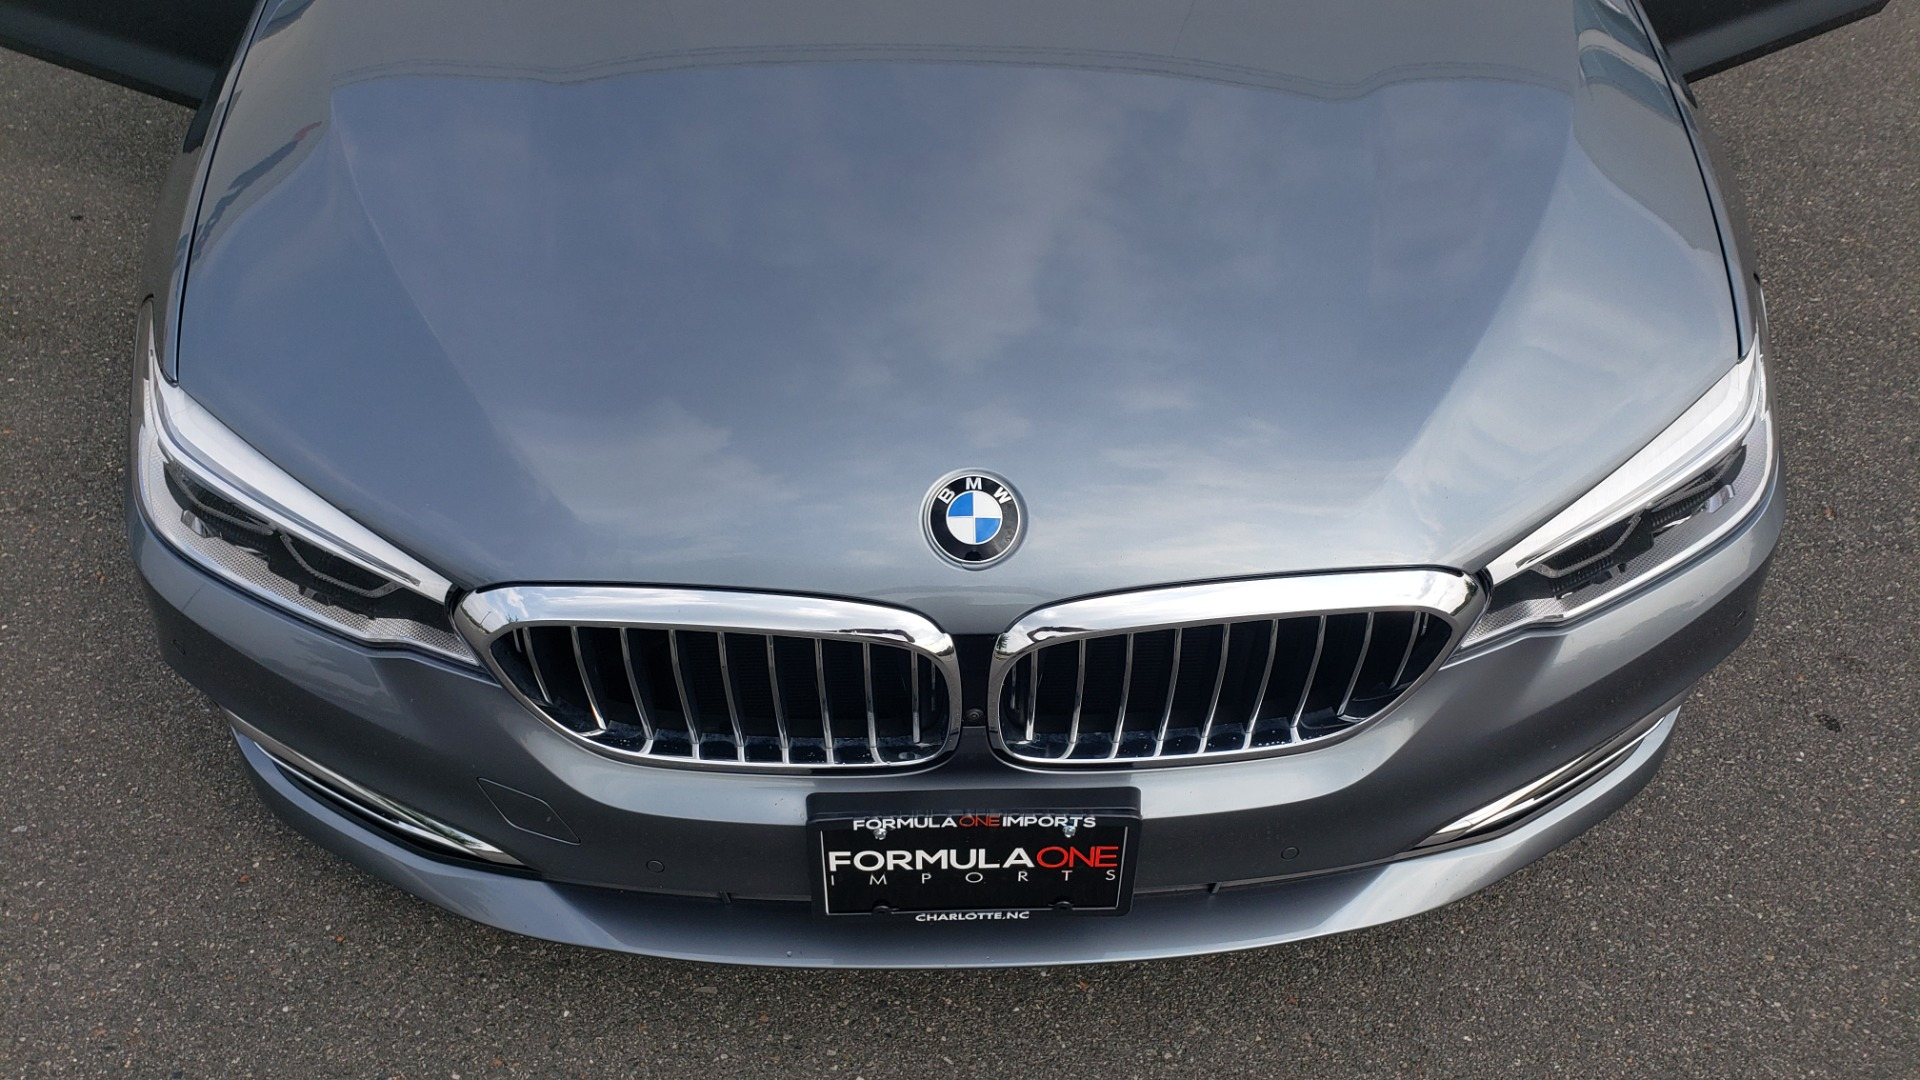 Used 2018 BMW 5 SERIES 540I XDRIVE PREMIUM / EXECUTIVE / LUXURY / H/K SND / REMOTE CONTROL PARKING for sale $40,995 at Formula Imports in Charlotte NC 28227 23